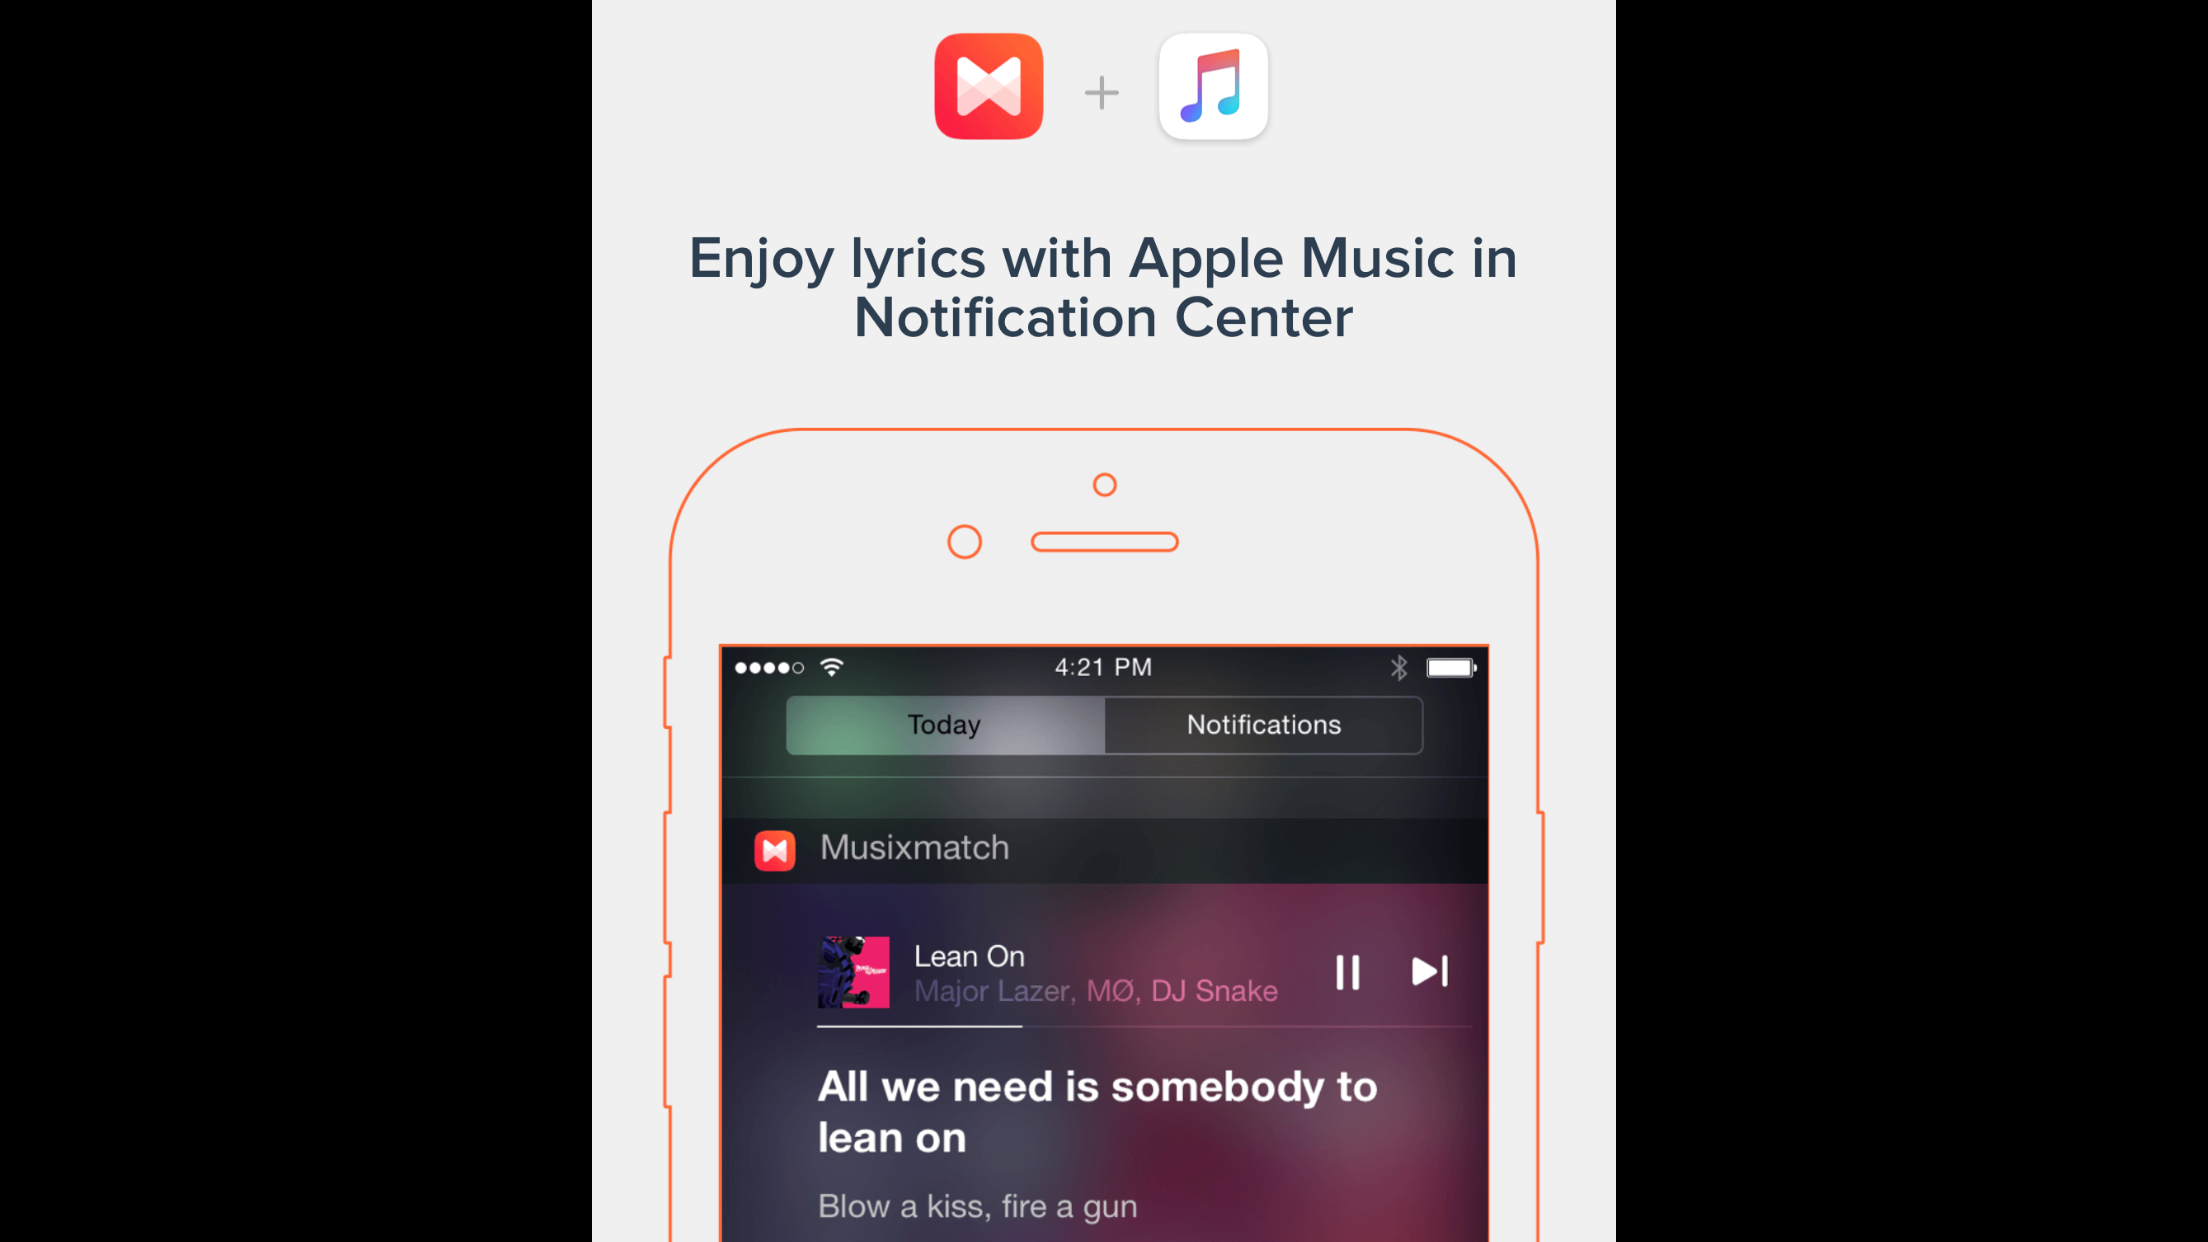 Musixmatch plays nice with Apple Music